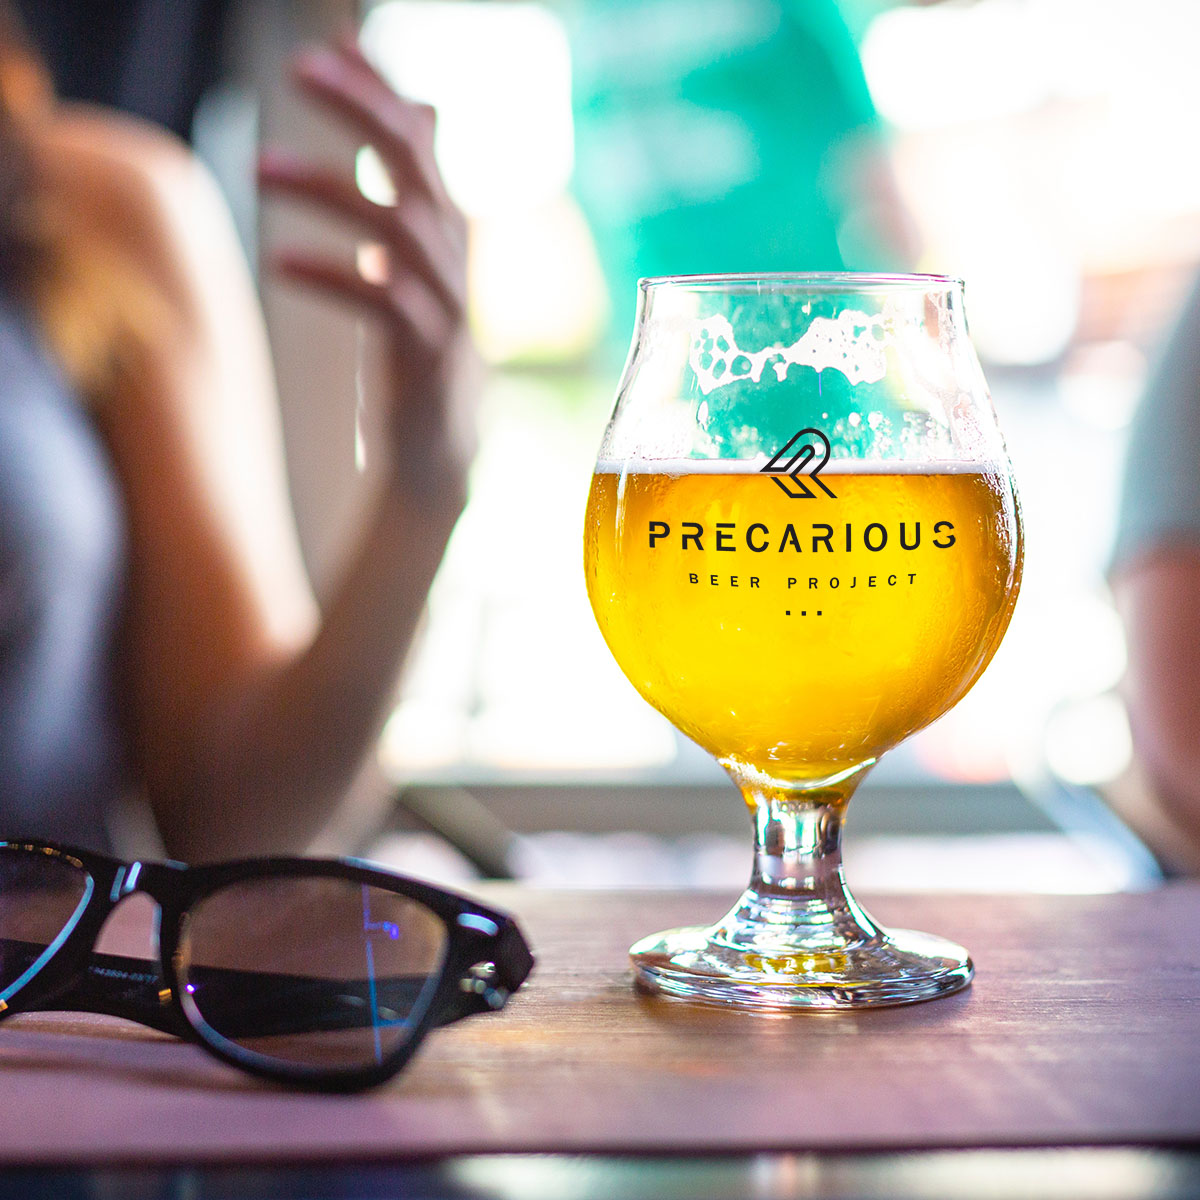 Precarious-Beer-Project-branding-Logo-Glass-RayBans.jpg